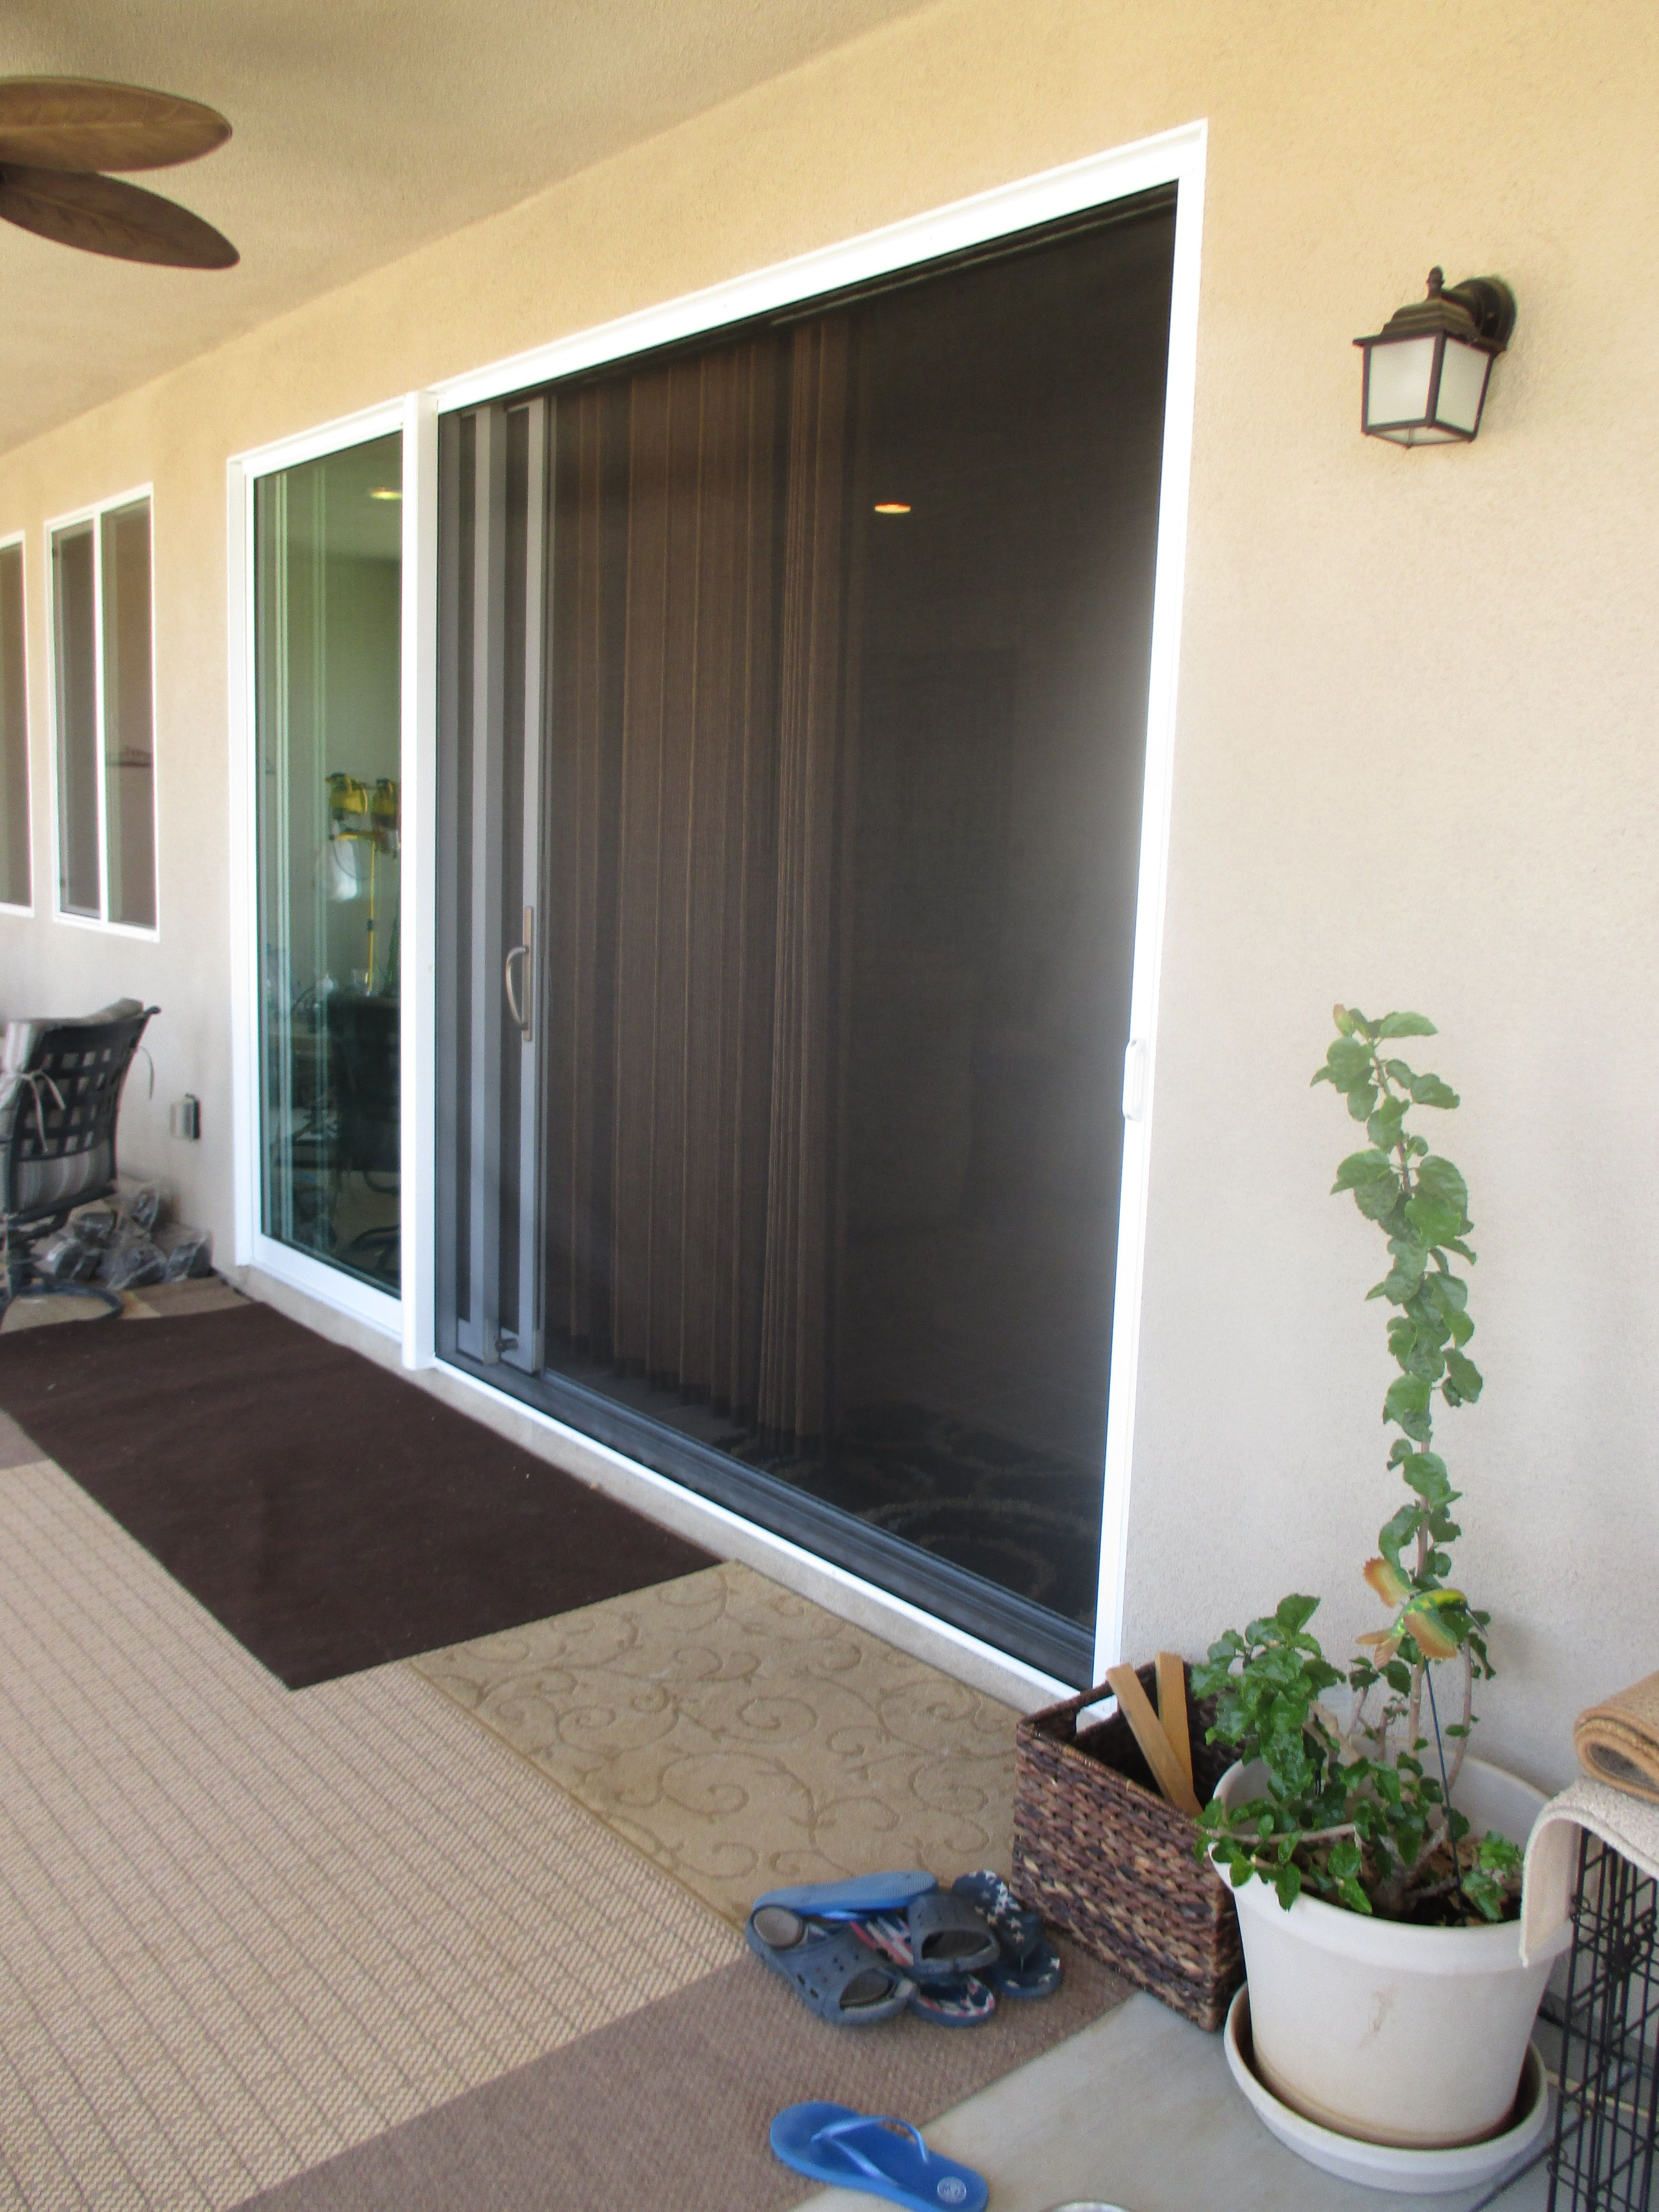 Large Compacting Sliding Door Retractable Screen System Do You Have